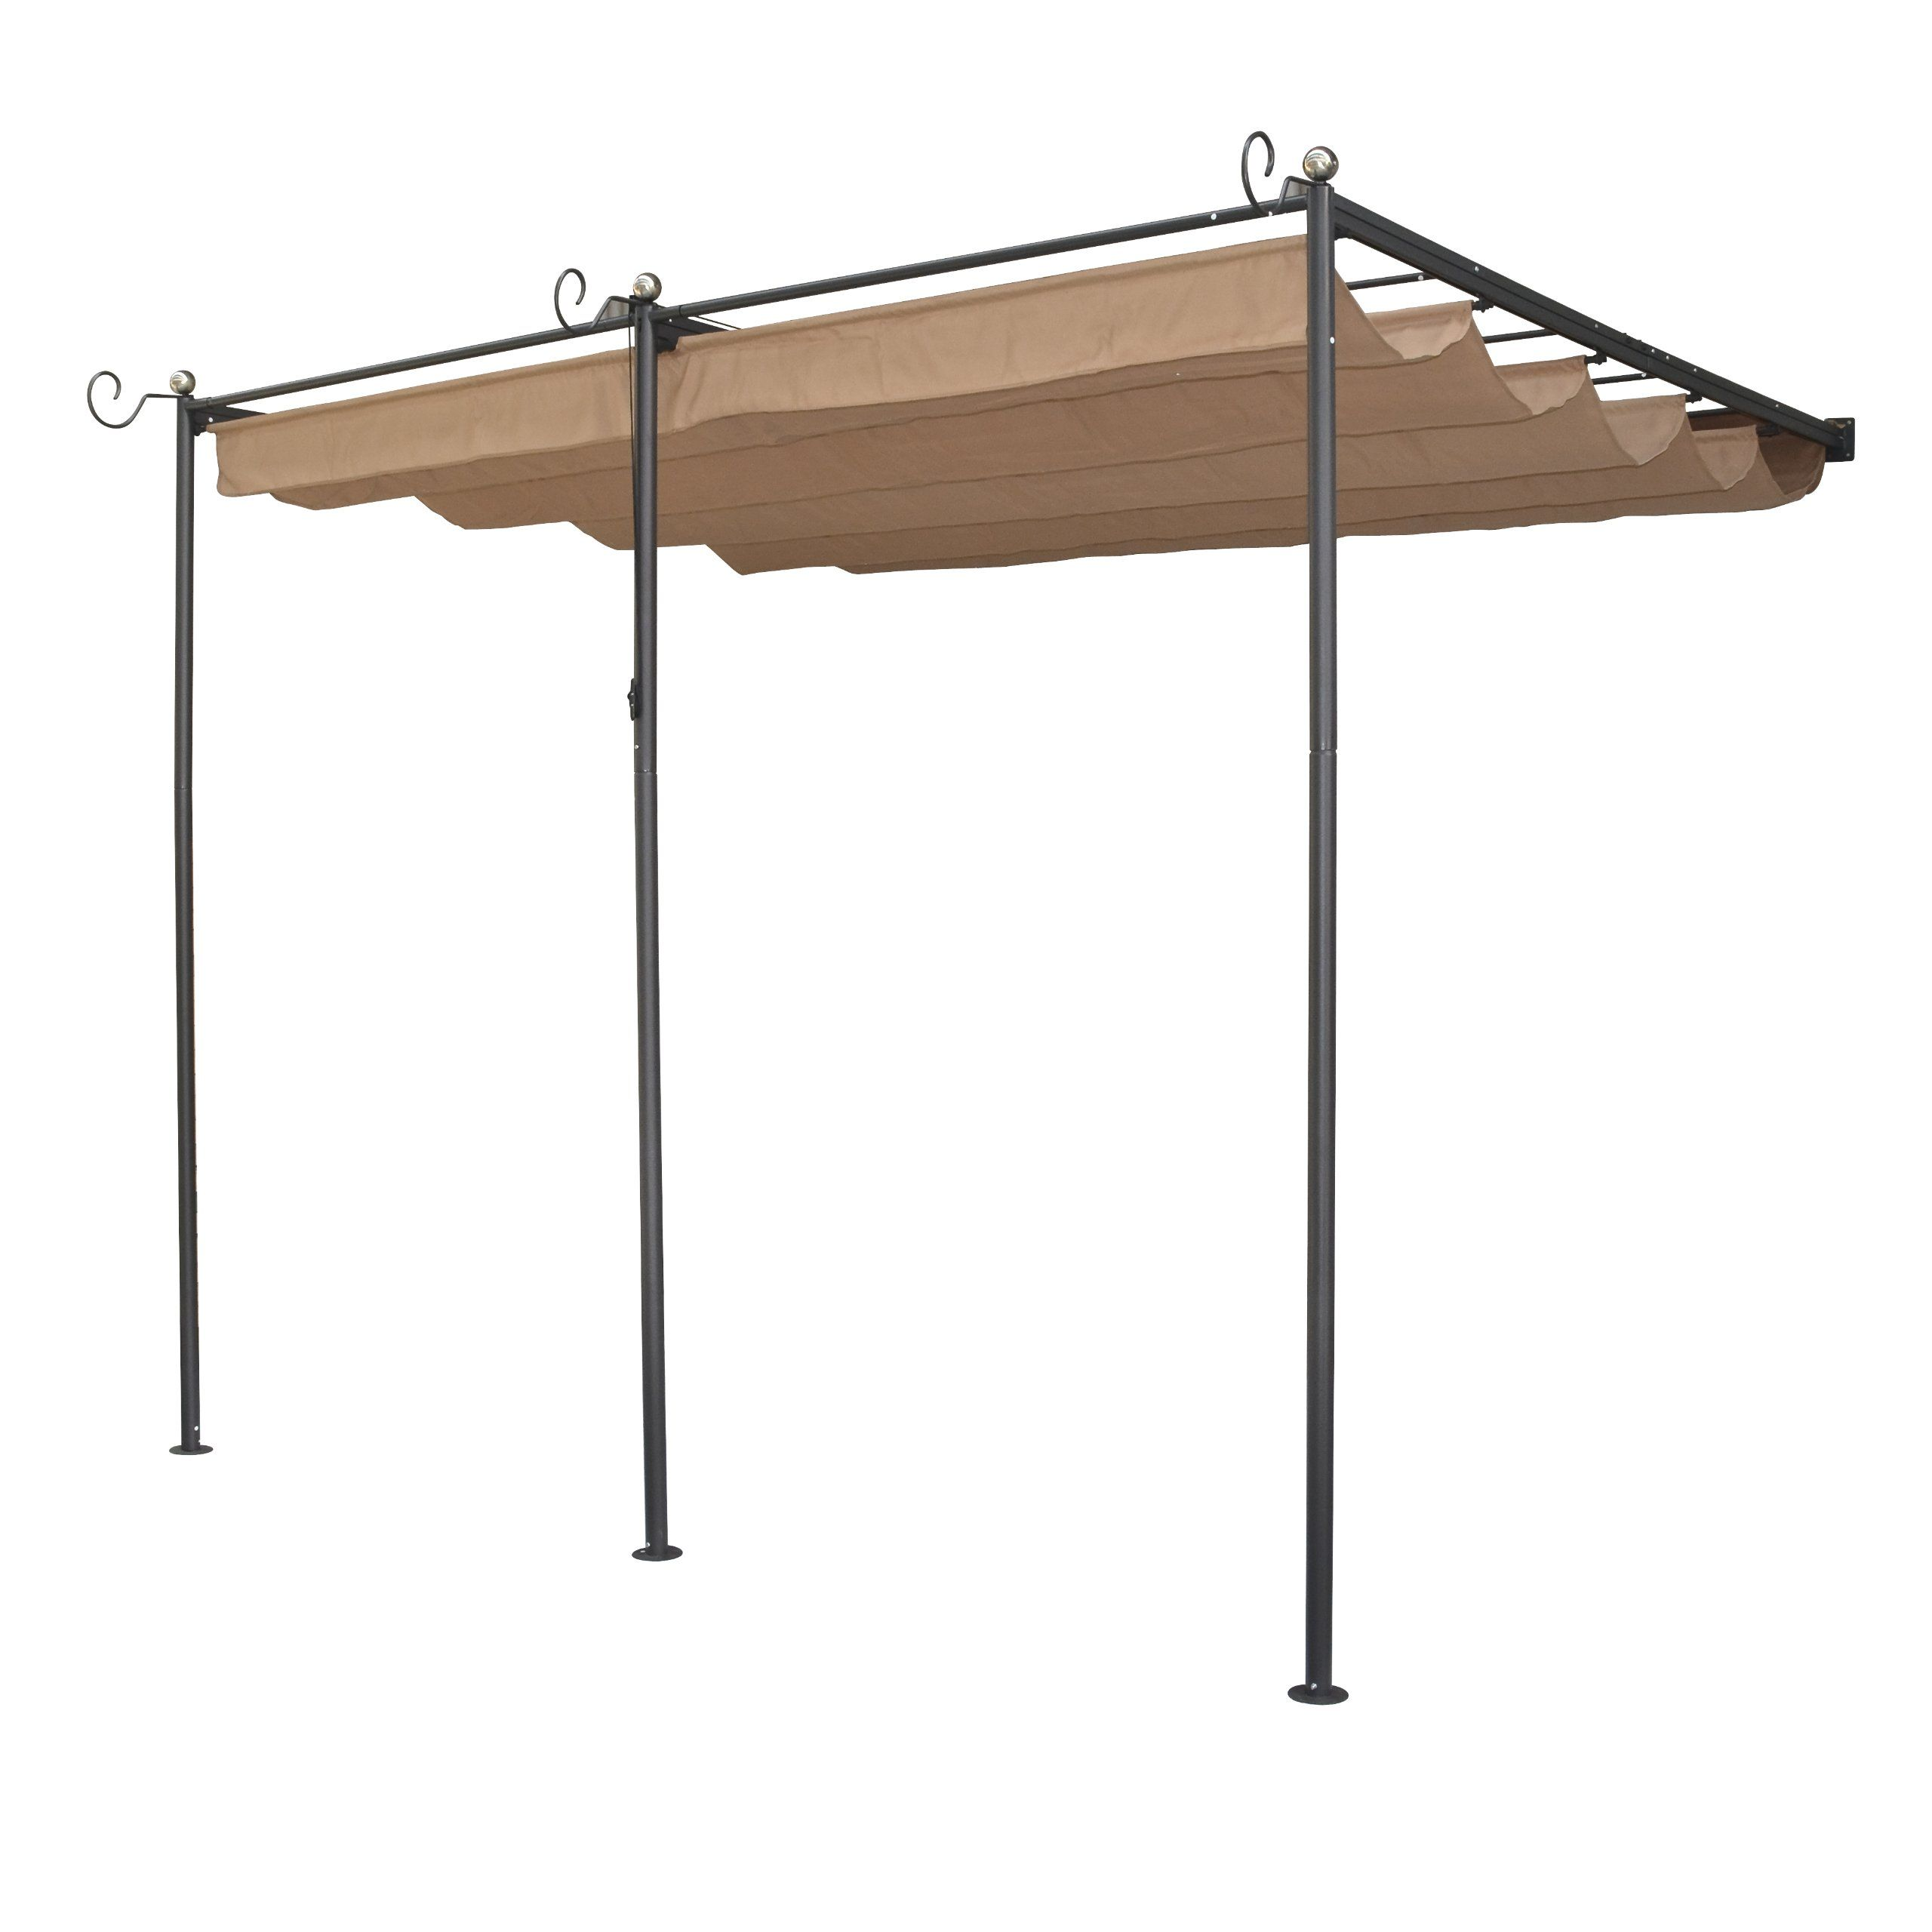 Bosmere PERWM1 Rowlinson St Tropez Wall Mounted Steel Sun Canopy With Retractable Fabric